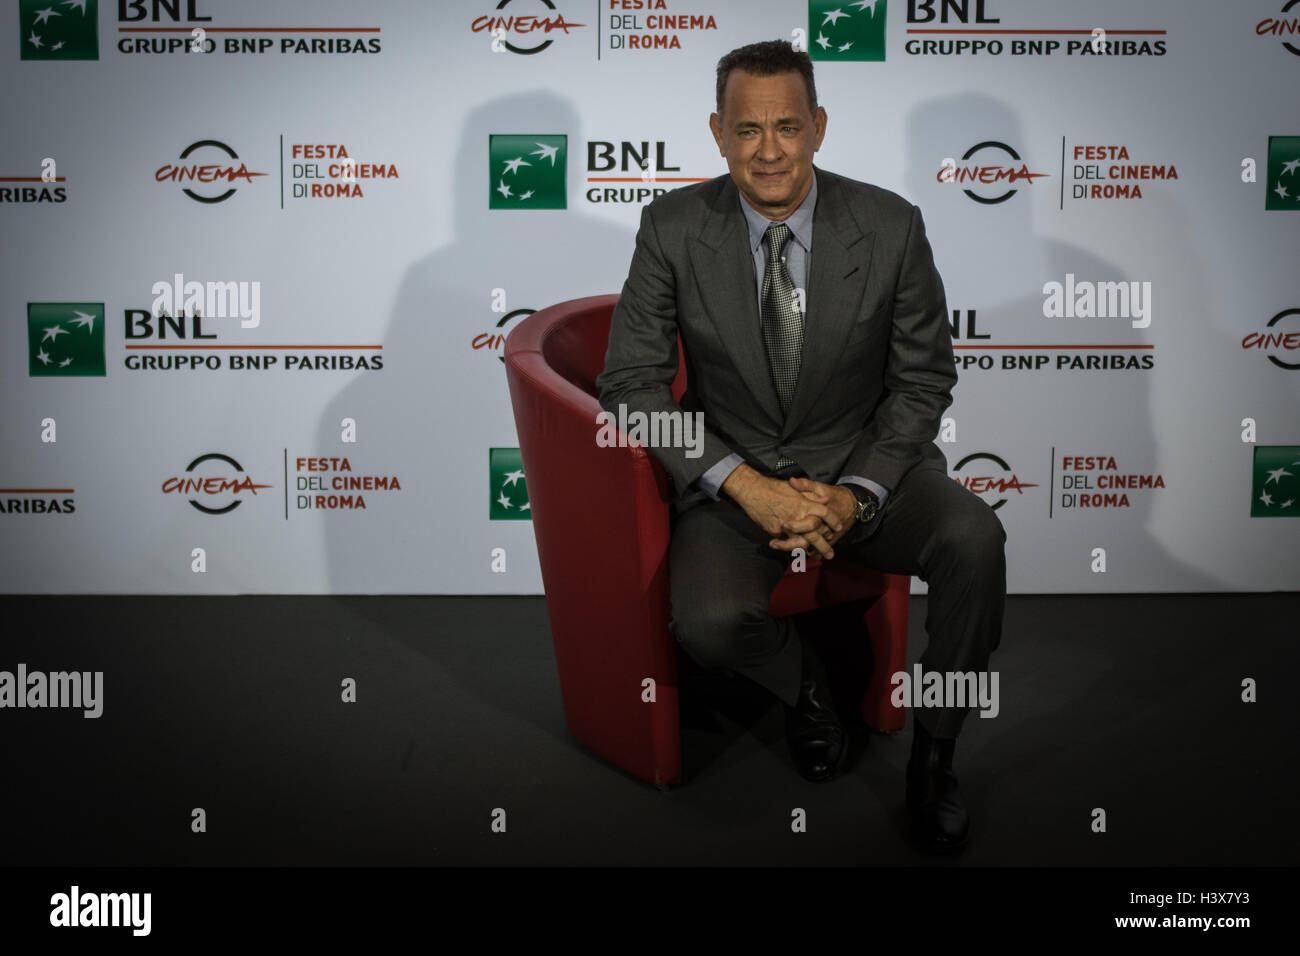 Rome, Italy. 13th October, 2016. Rome Film Festival 11 edition  the pictured Tom Hanks Credit:  Andrea Ronchini/Alamy - Stock Image